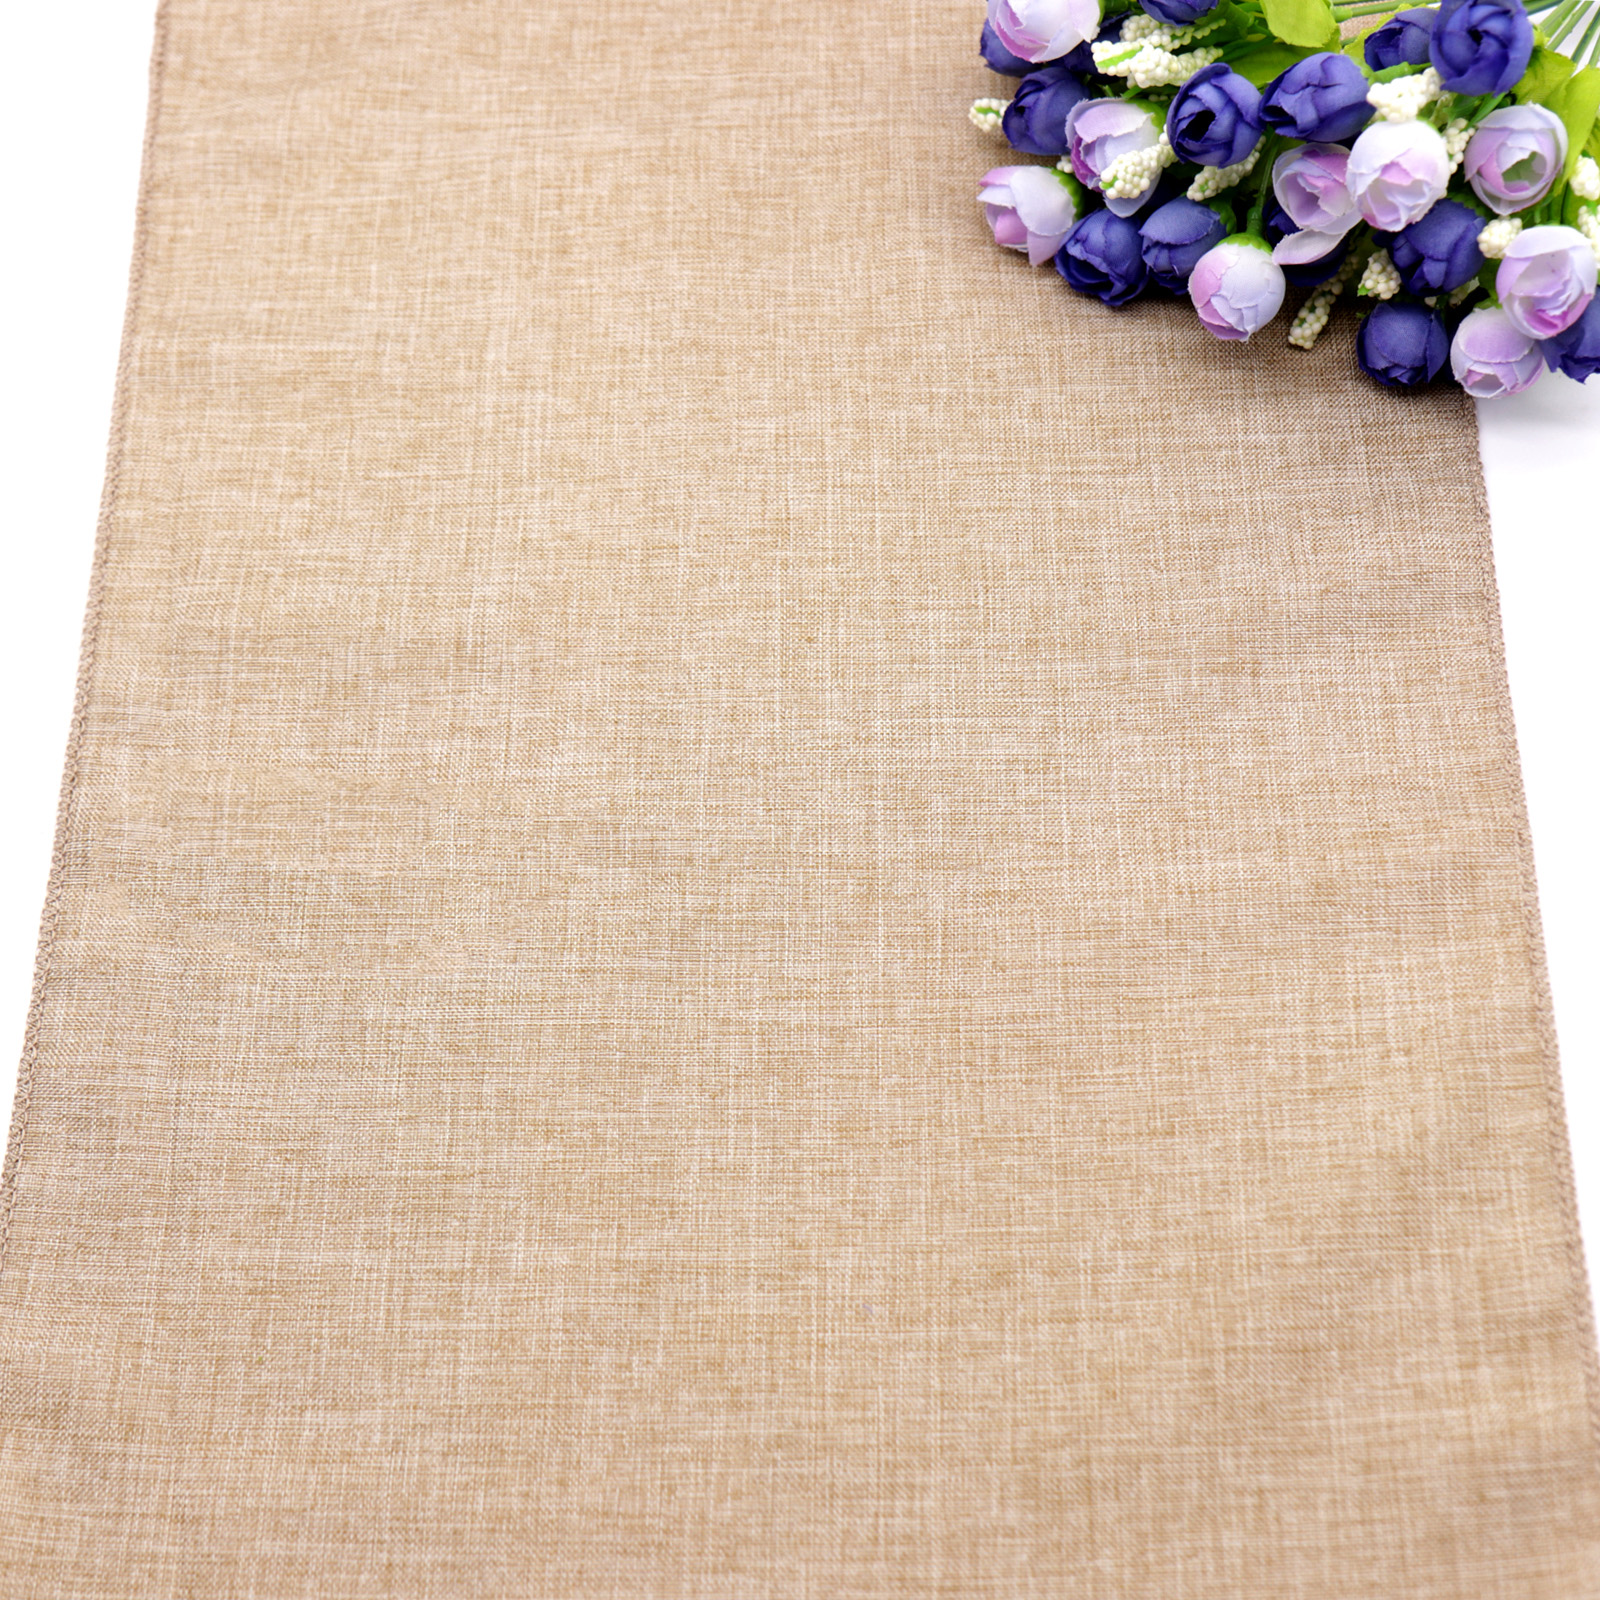 1pcs Modern Table Runner Rustic Imitation Linen Tablecloths For Christmas Camino De Mesa